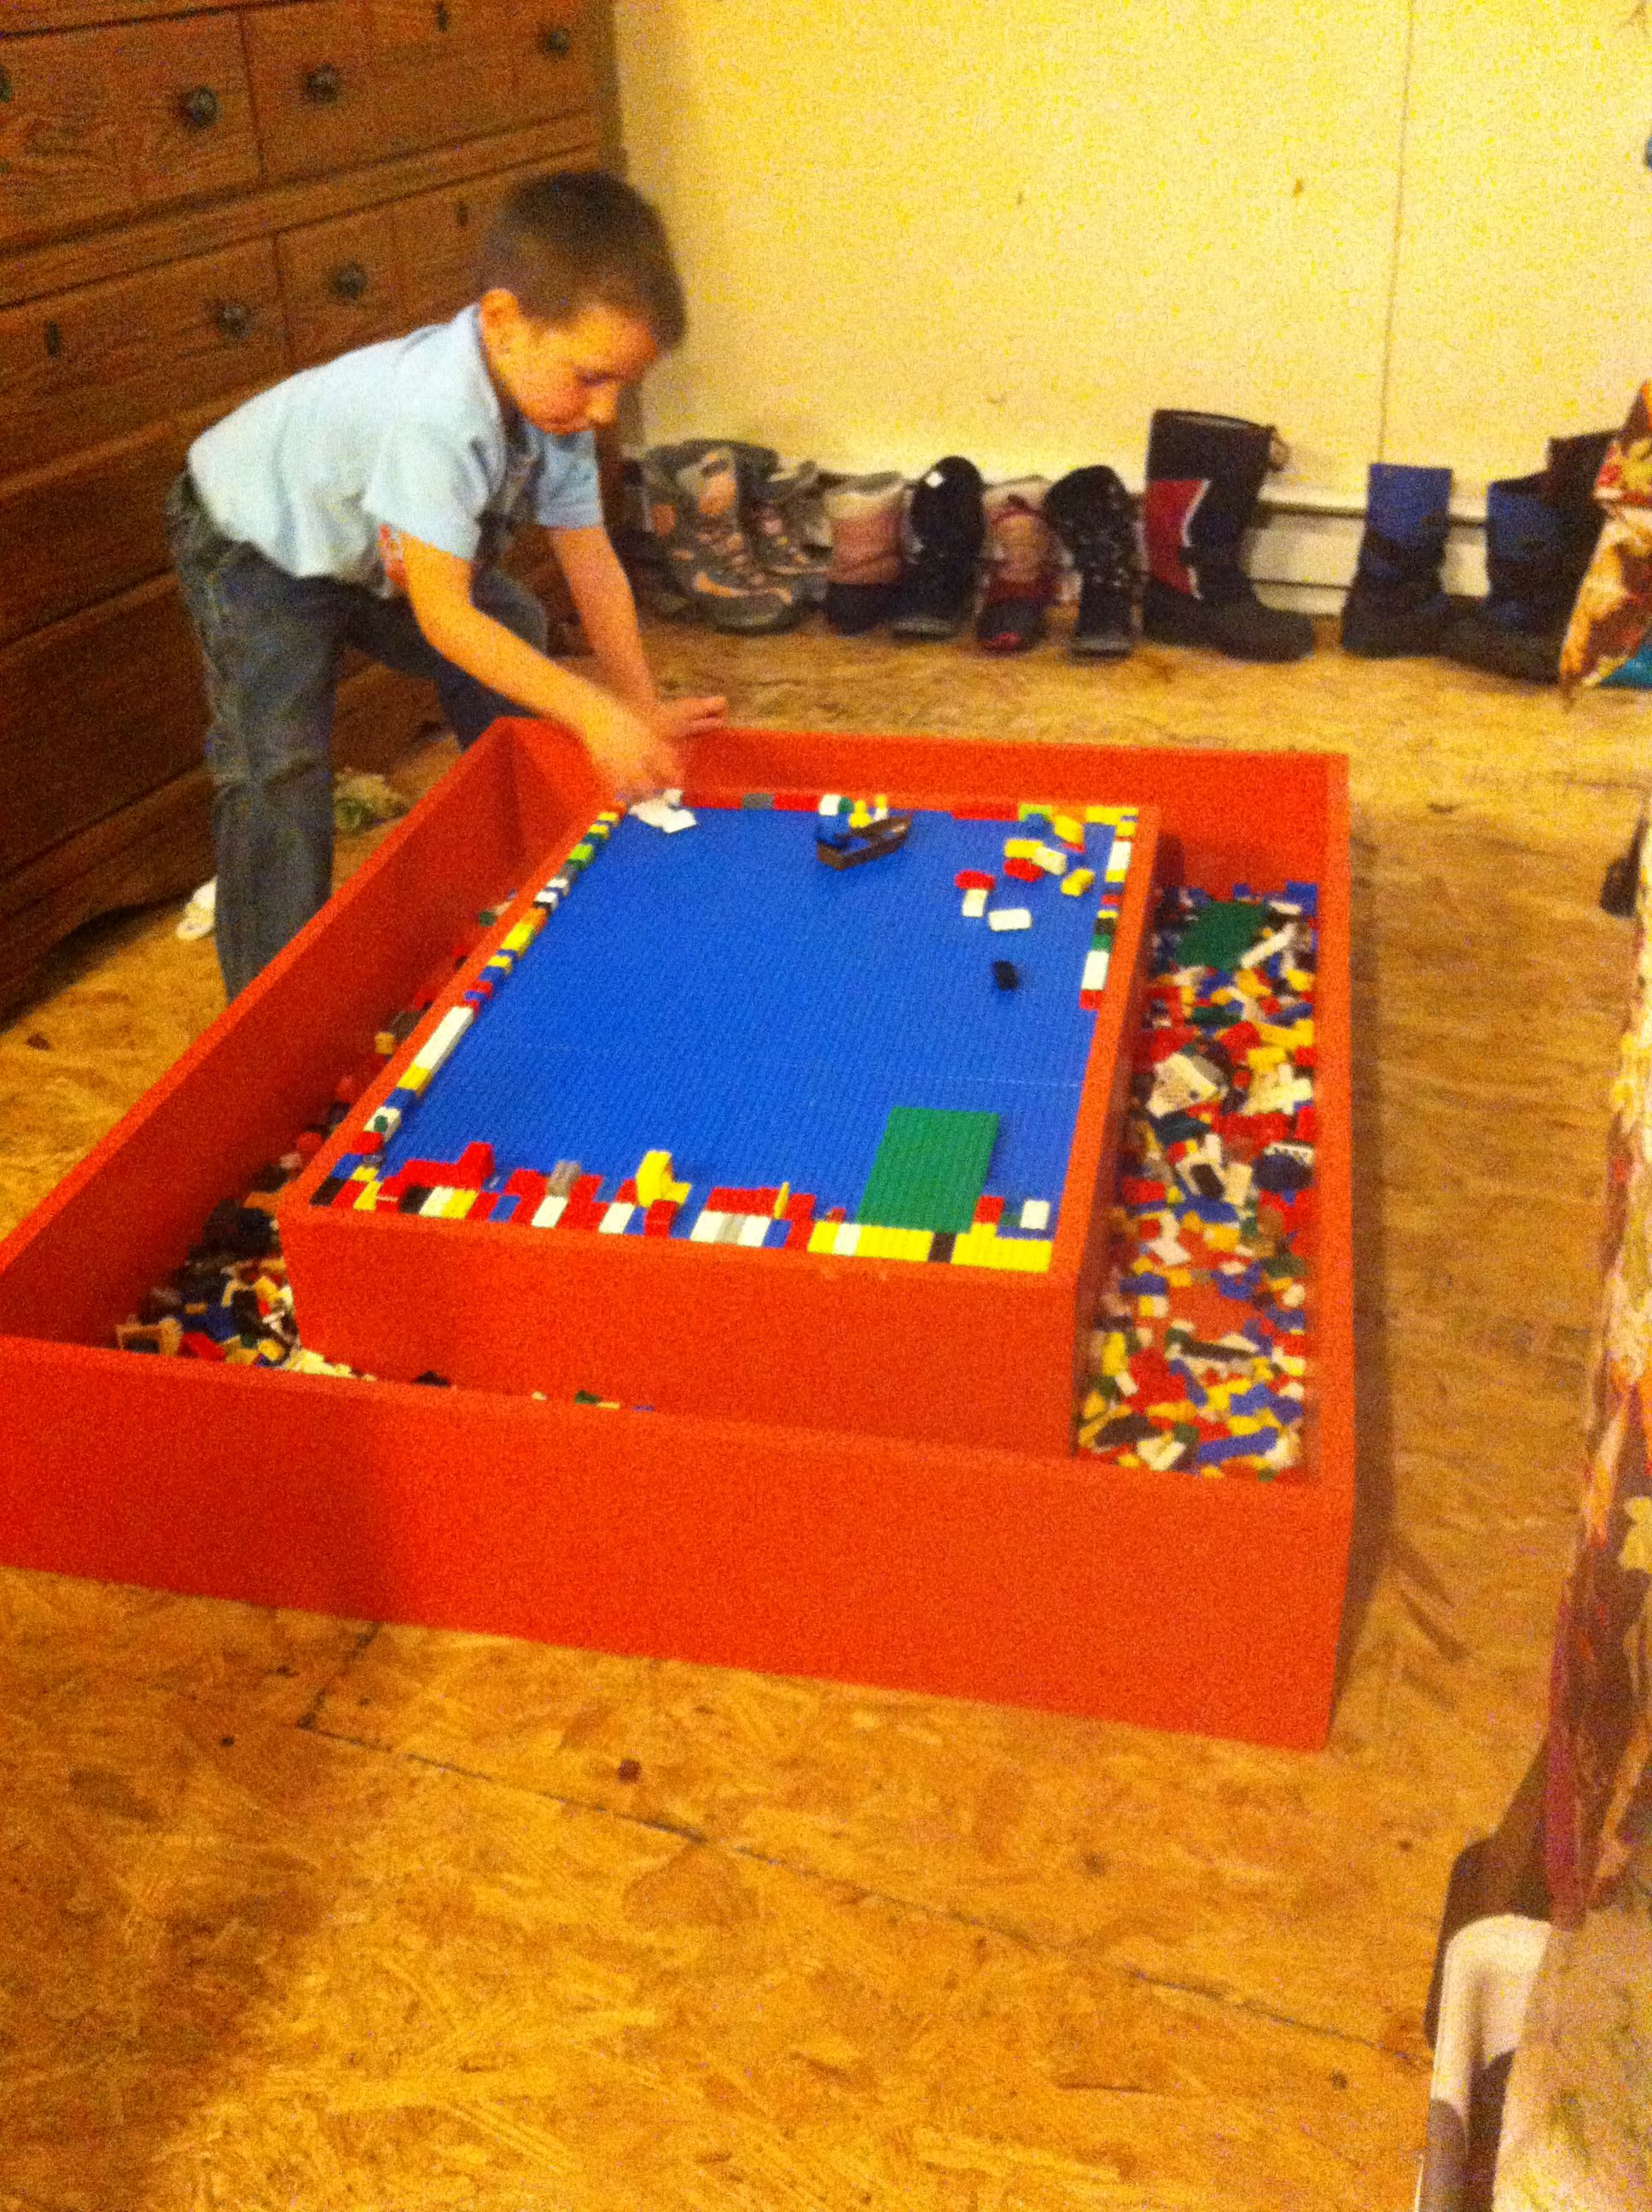 Lego Table With A Trough For The Legos Legs Can Be Added As Child Grows Made To Fit Under Bed For Easy Storage Kids Room Boys Playroom Kids Room